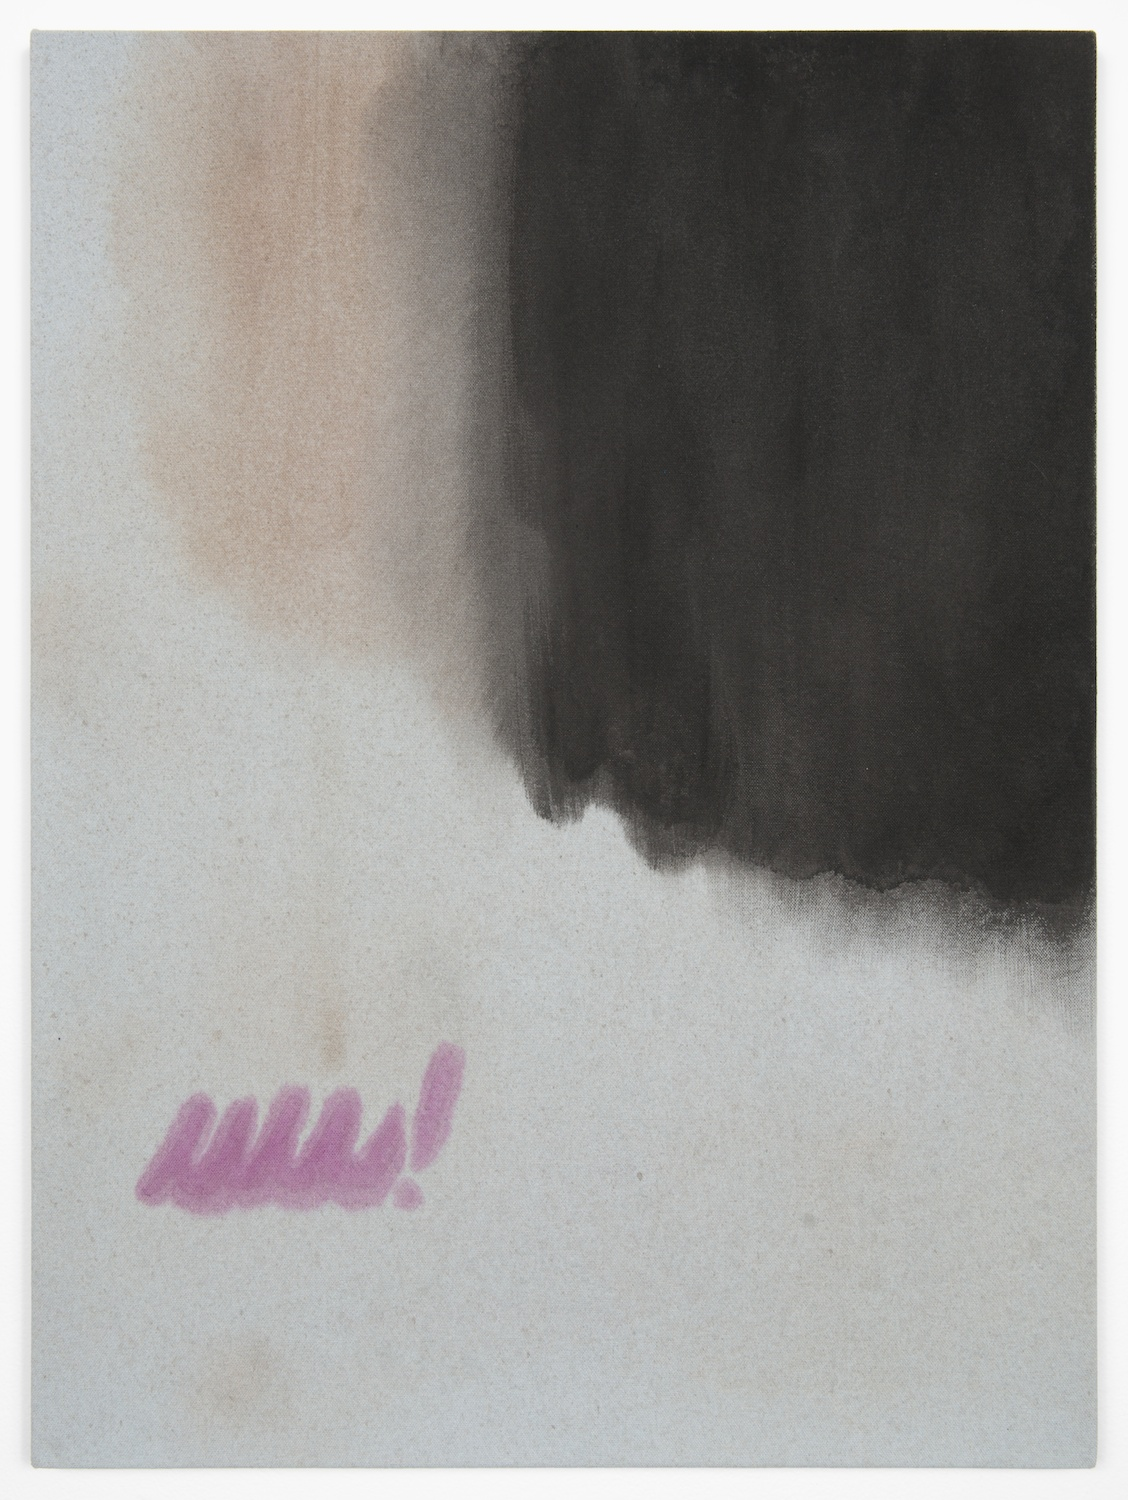 Amanda Ross-Ho  Untitled Painting (HALLOWEEN NIGHT!)  2013 Acrylic on dyed canvas 24h x 18w in ARH052